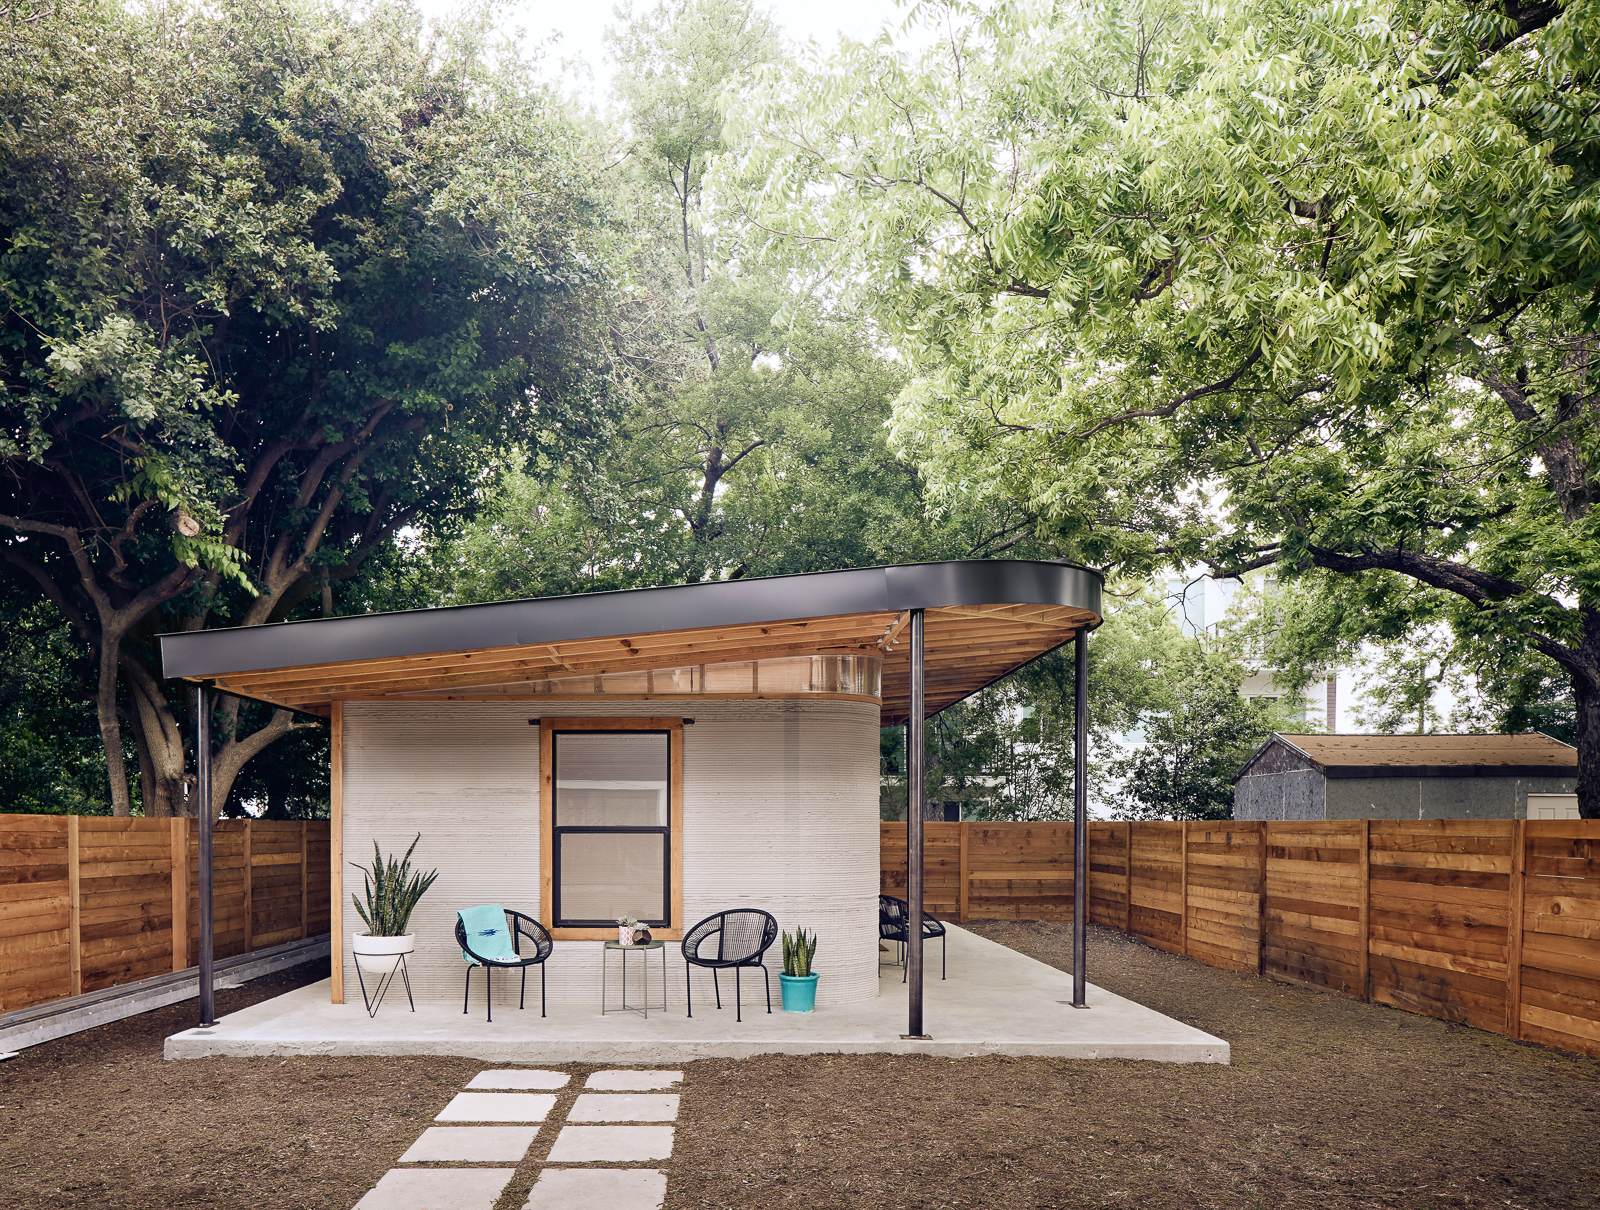 3D-Printed Homes for the Homeless